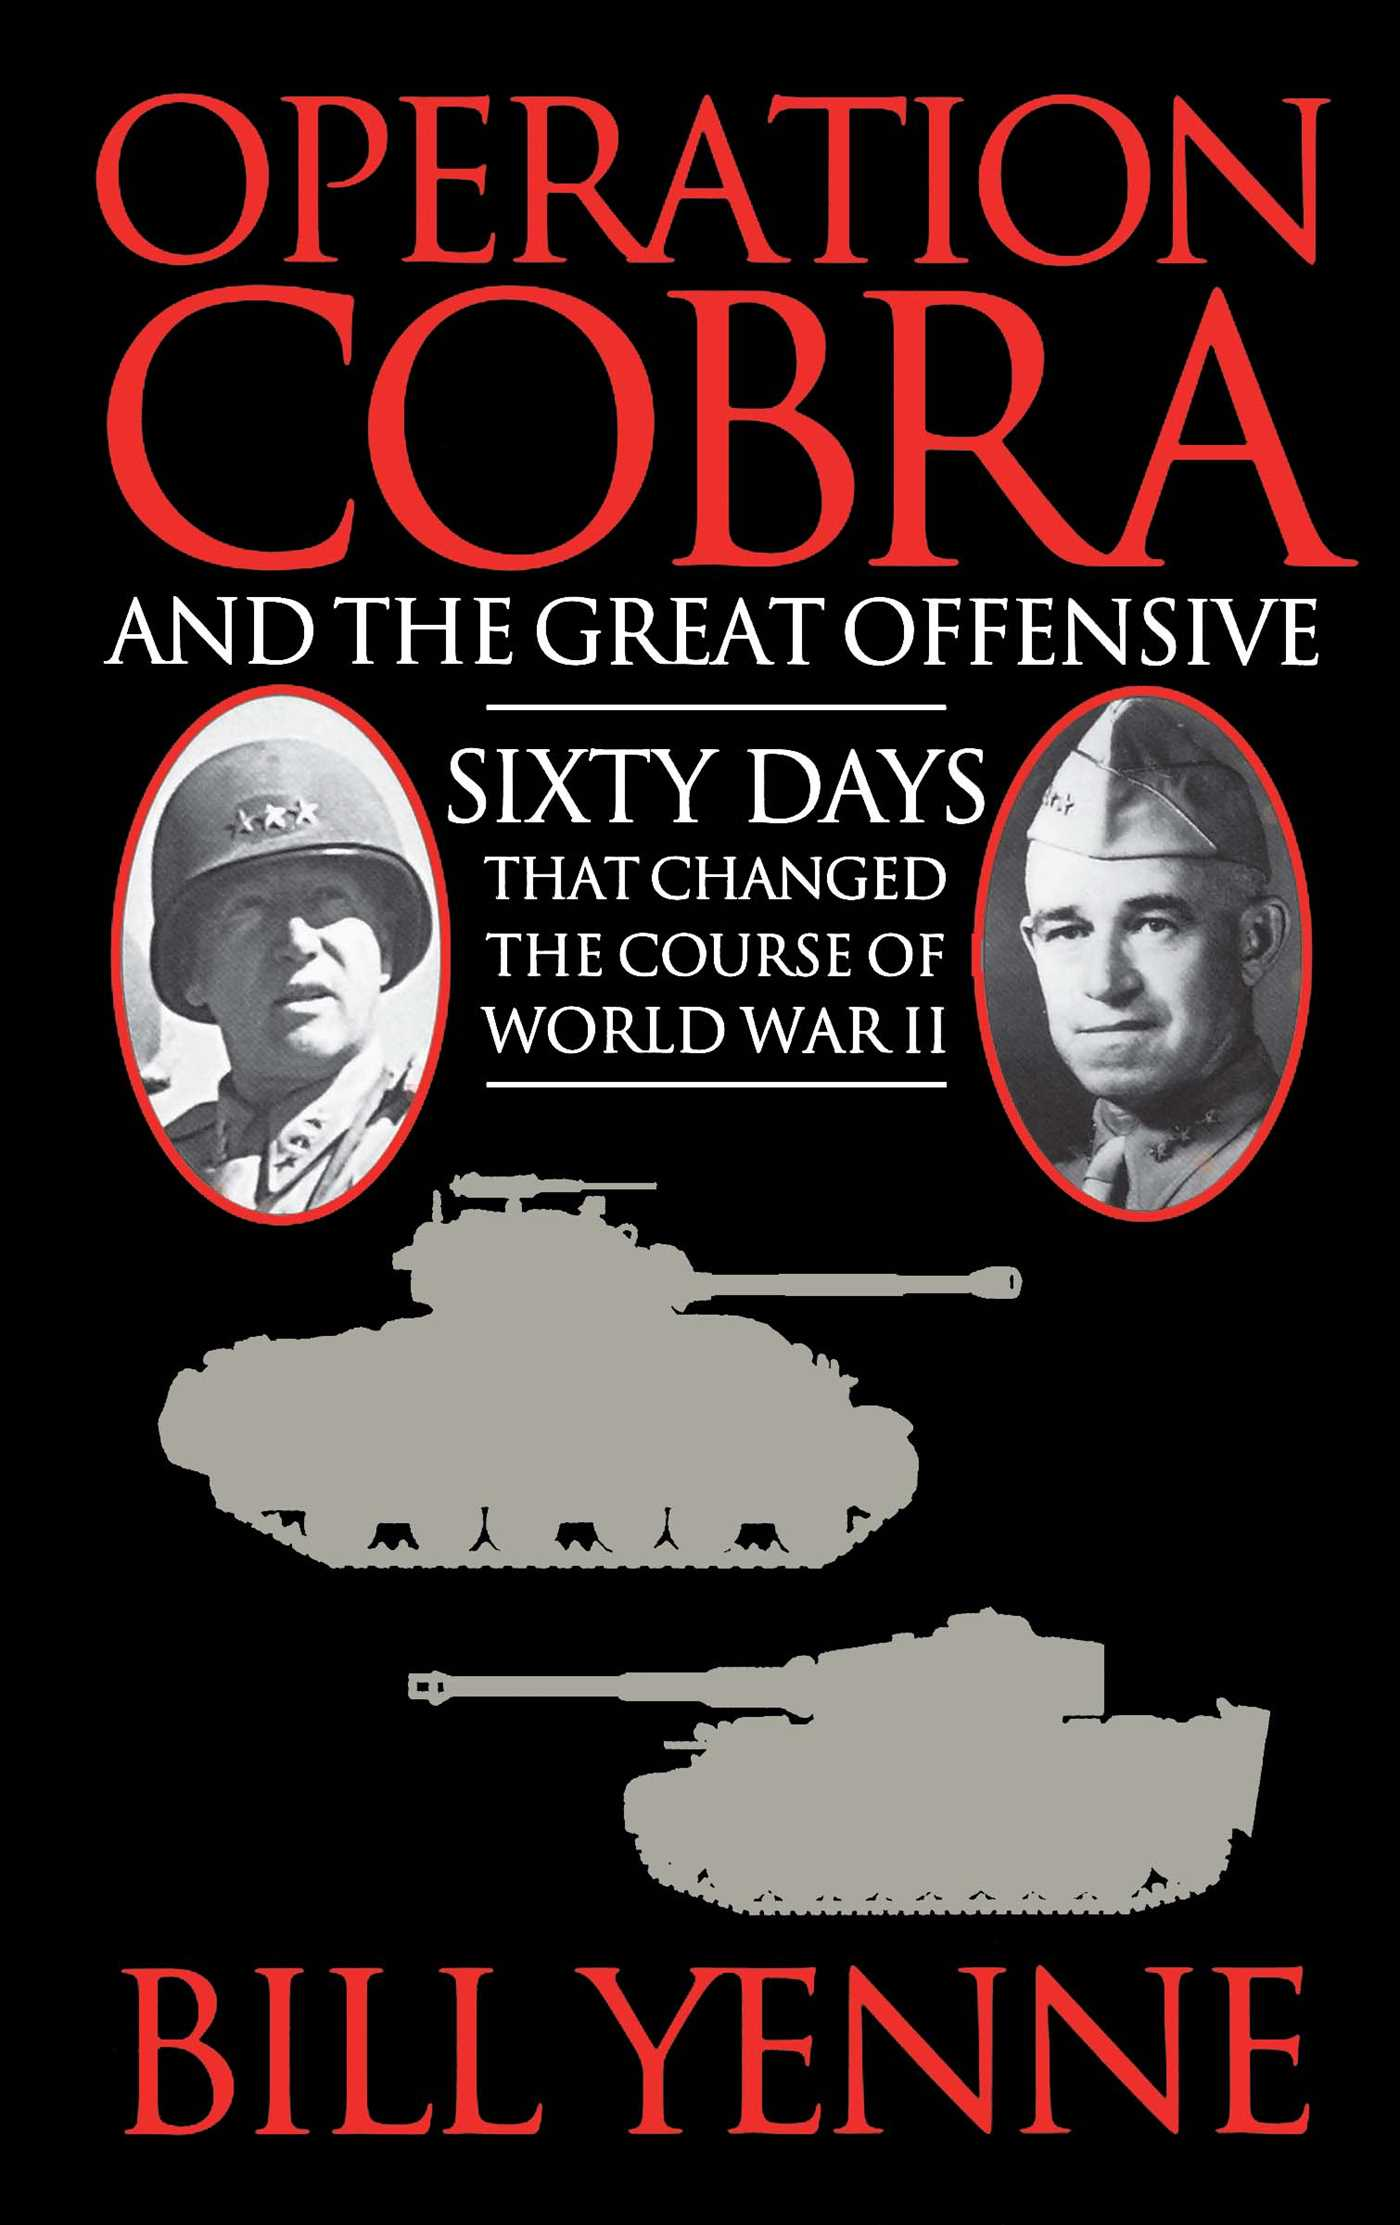 Operation cobra and the great offensive 9781451604214 hr